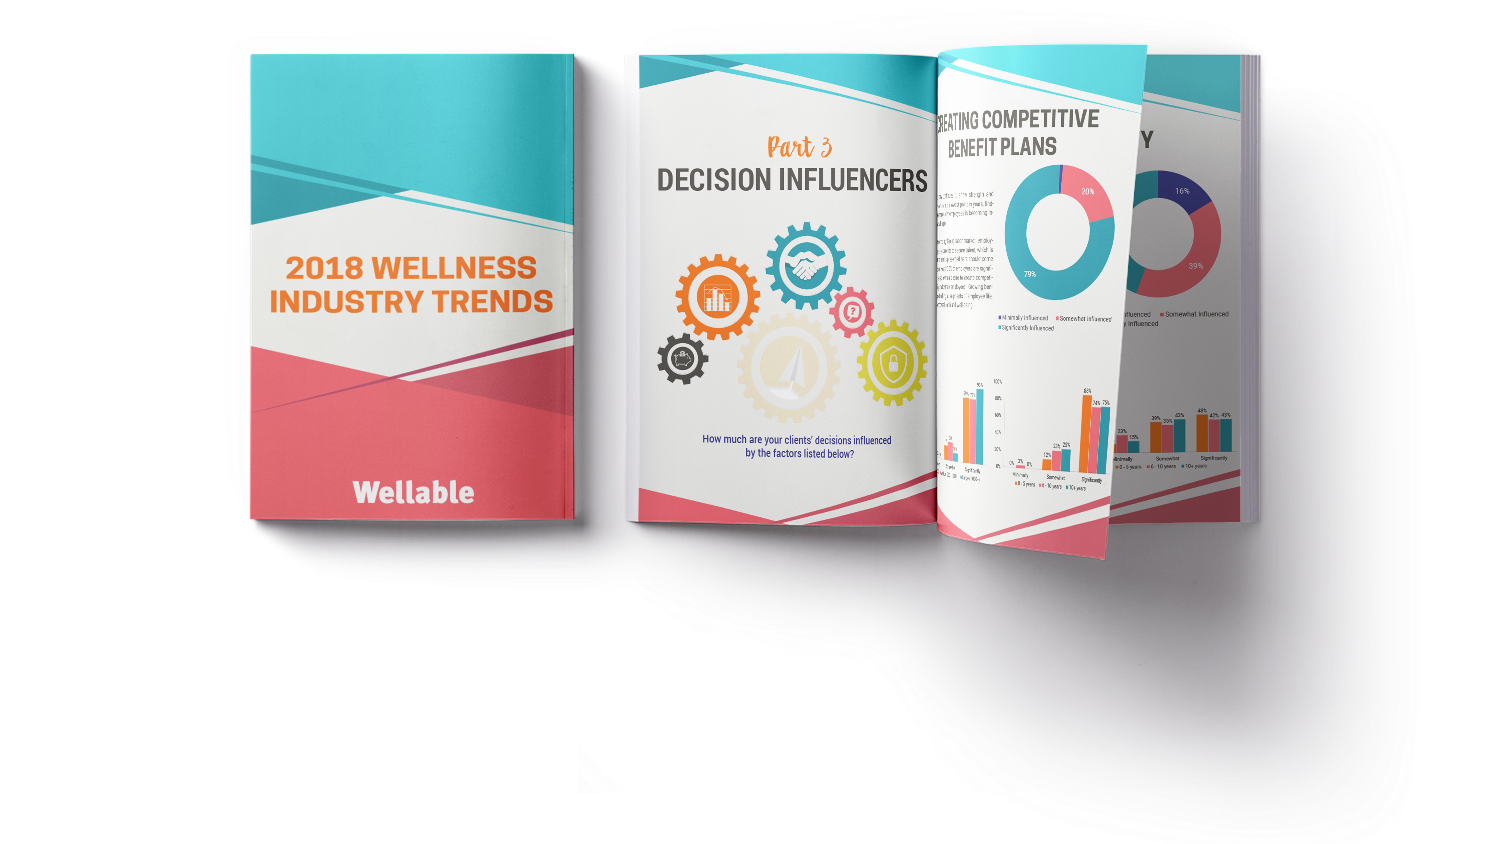 2018 Wellness Industry Trends Report Cover